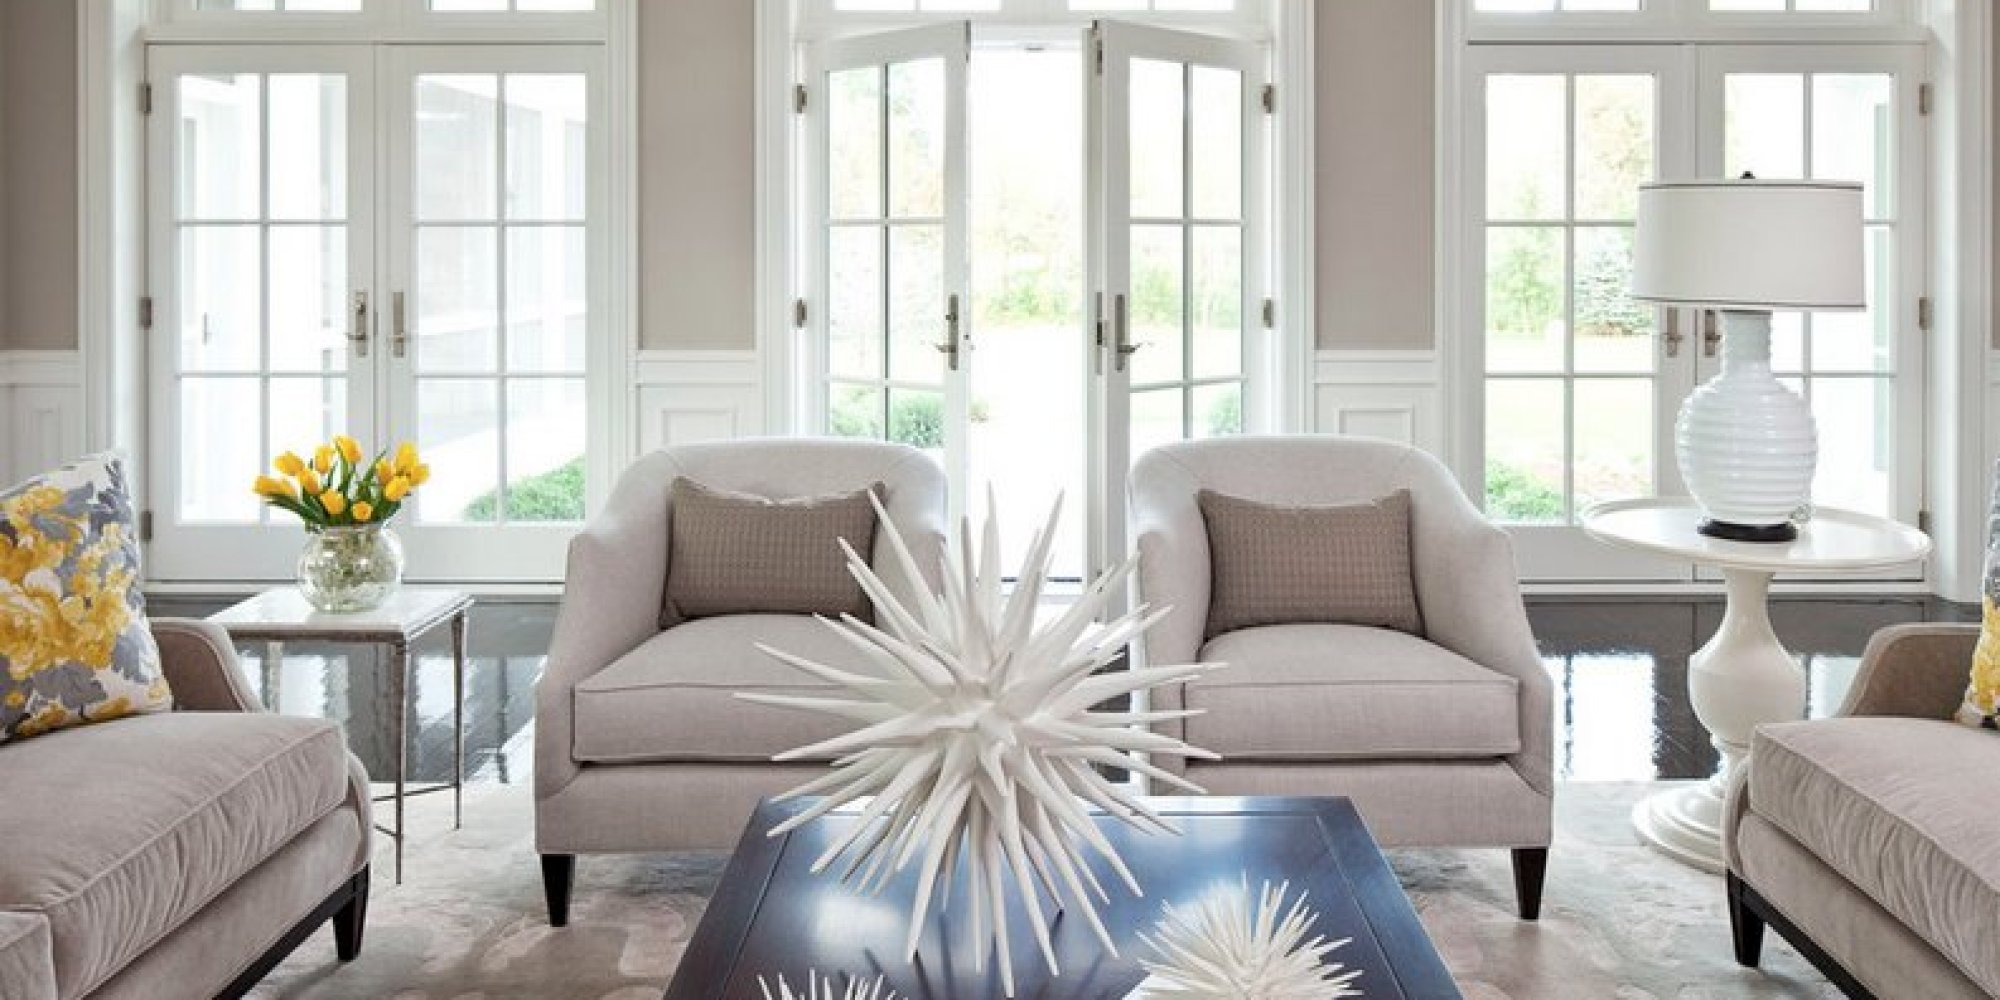 The 8 best neutral paint colors that 39 ll work in any home no matter the style photos huffpost Best home paint